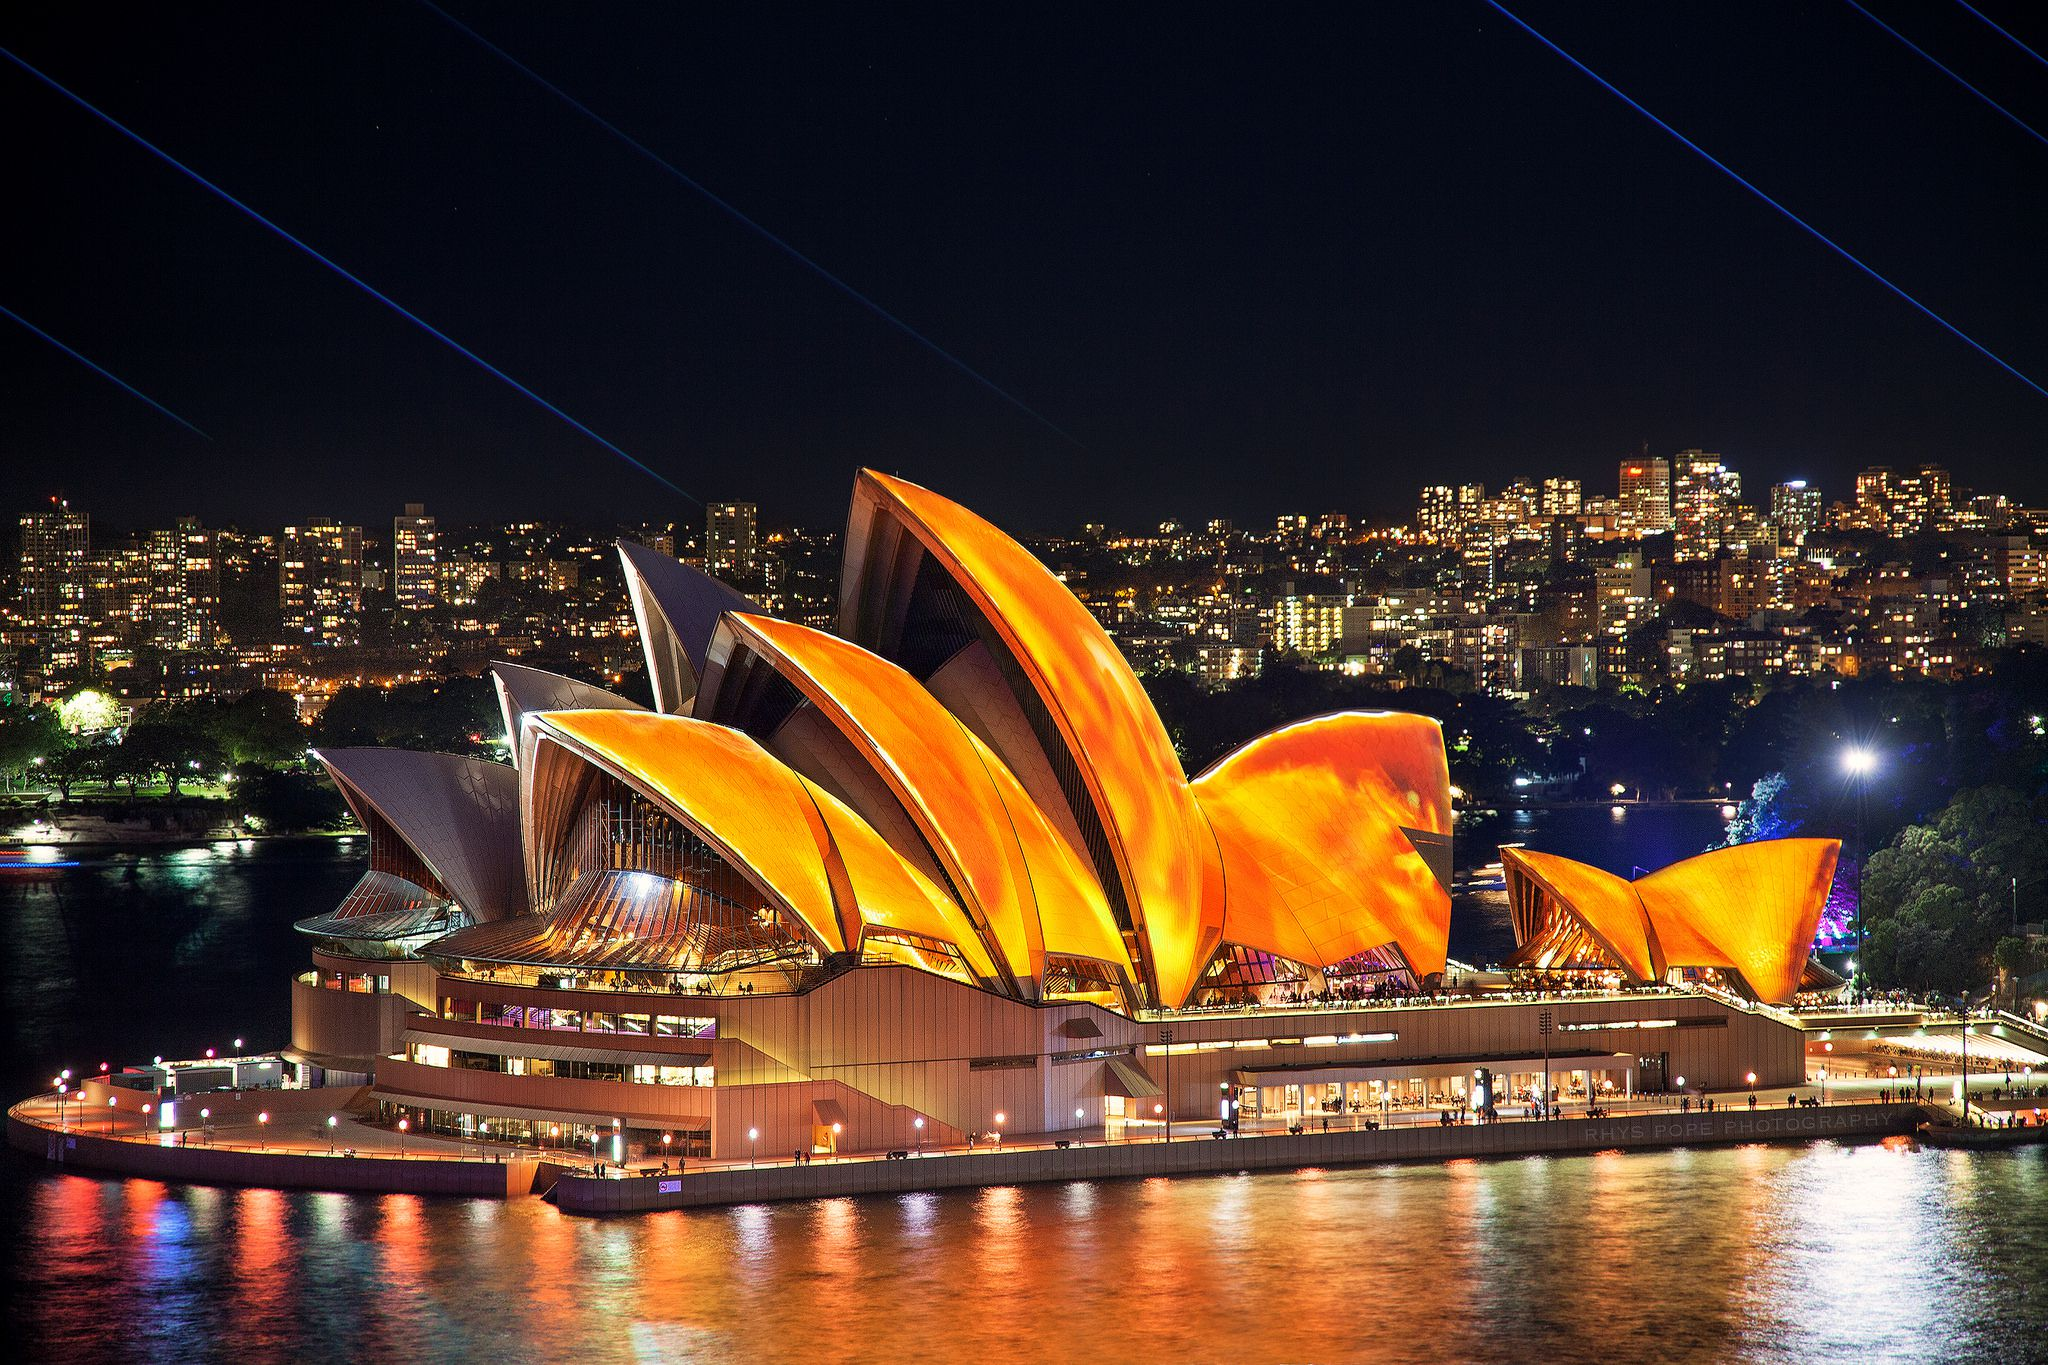 Iredible Color Palette In Sydney Opera House 3 Images In Hd